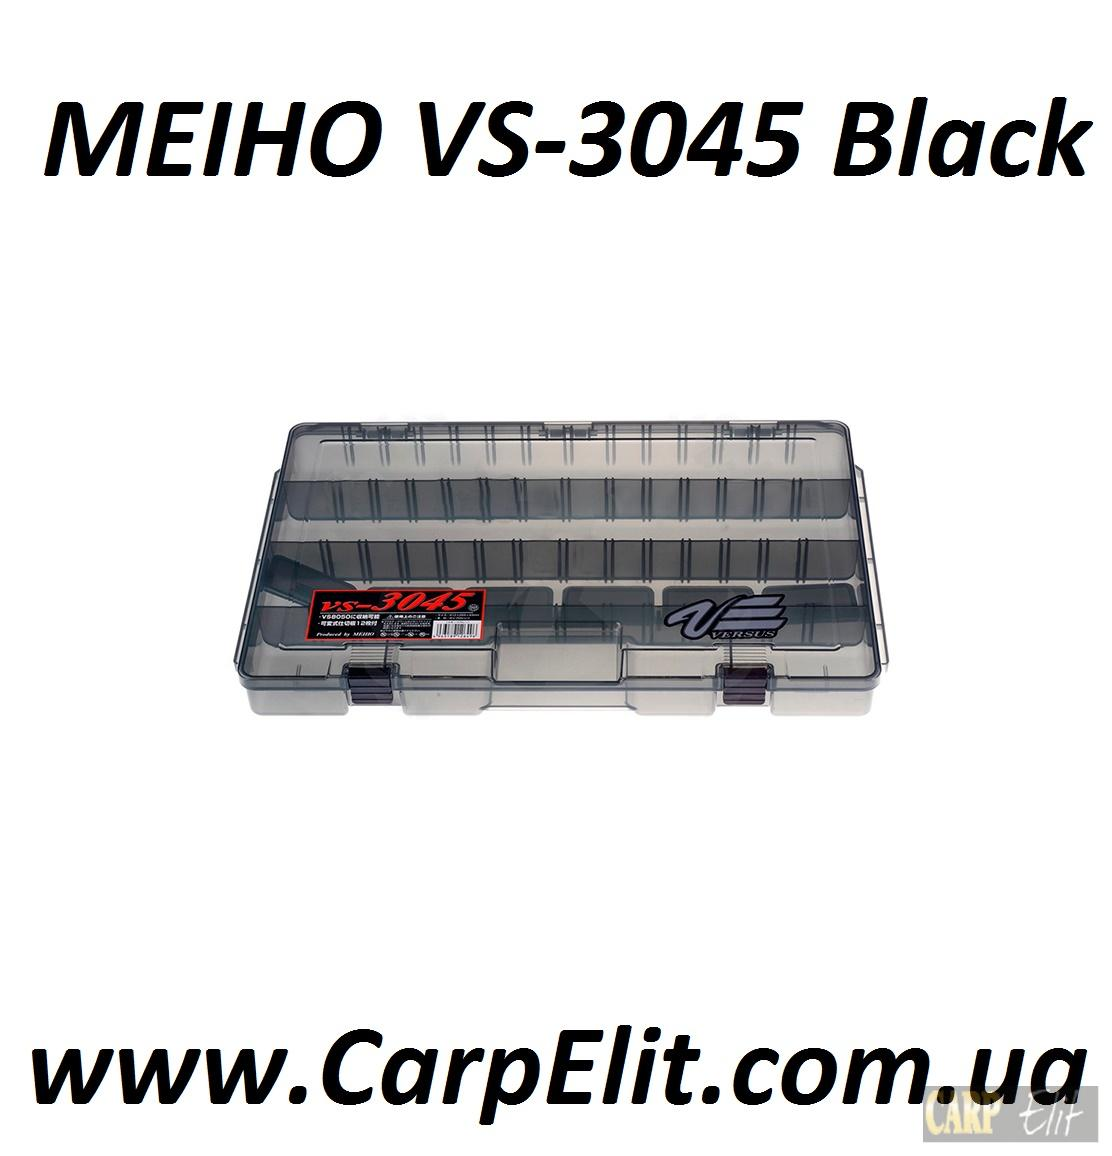 MEIHO VS-3045 Black